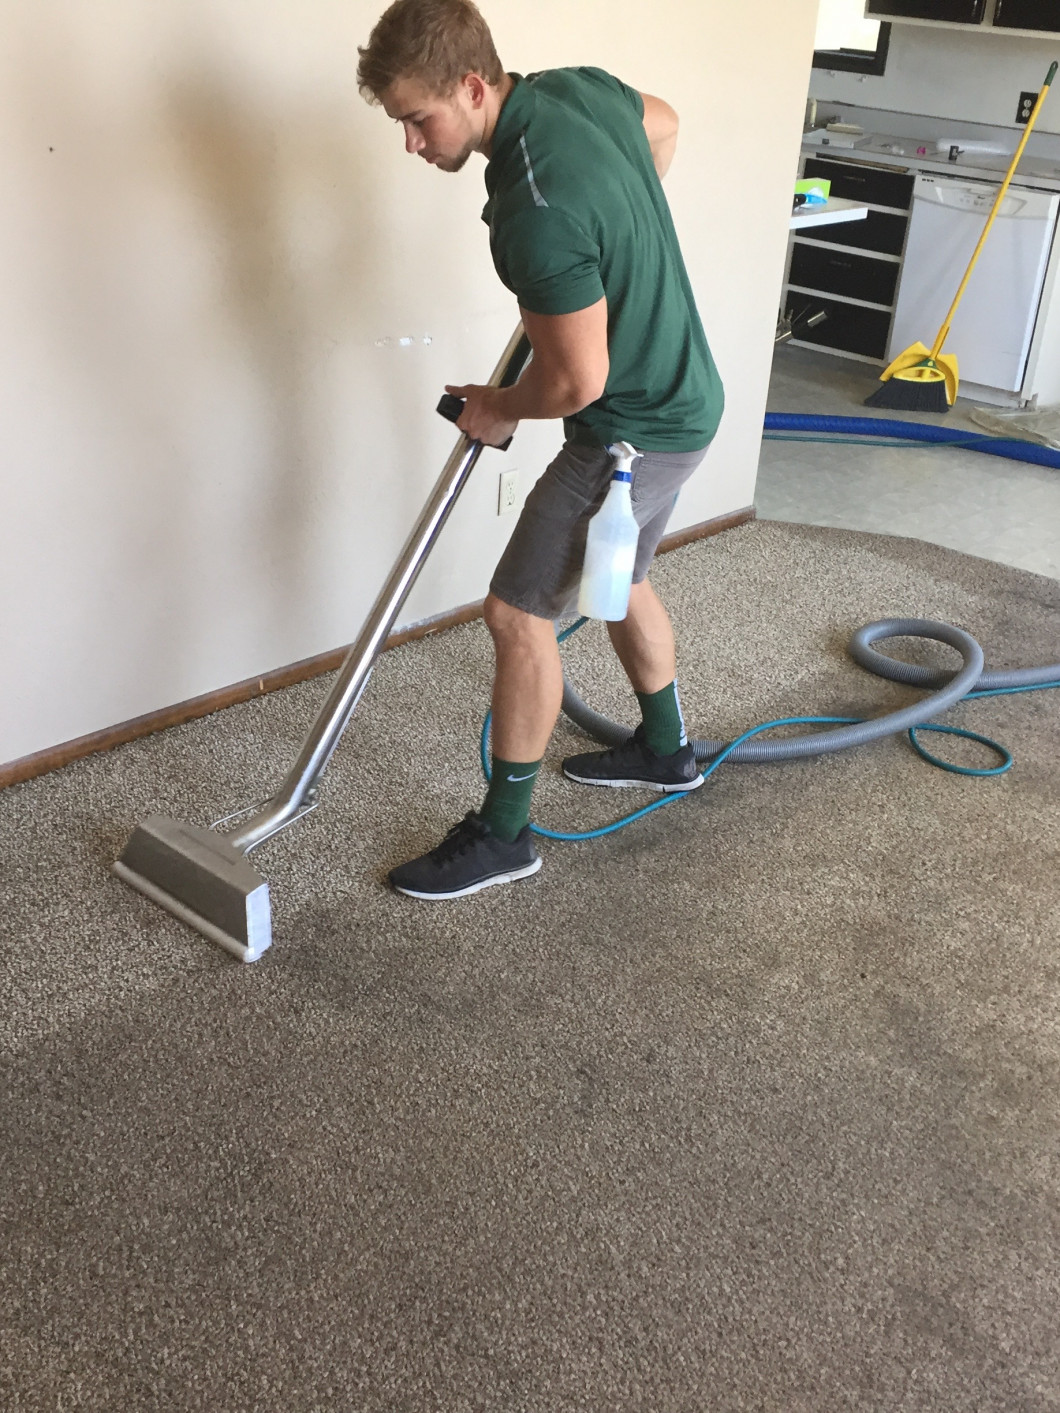 Why Choose Xtreme Carpet Cleaning?